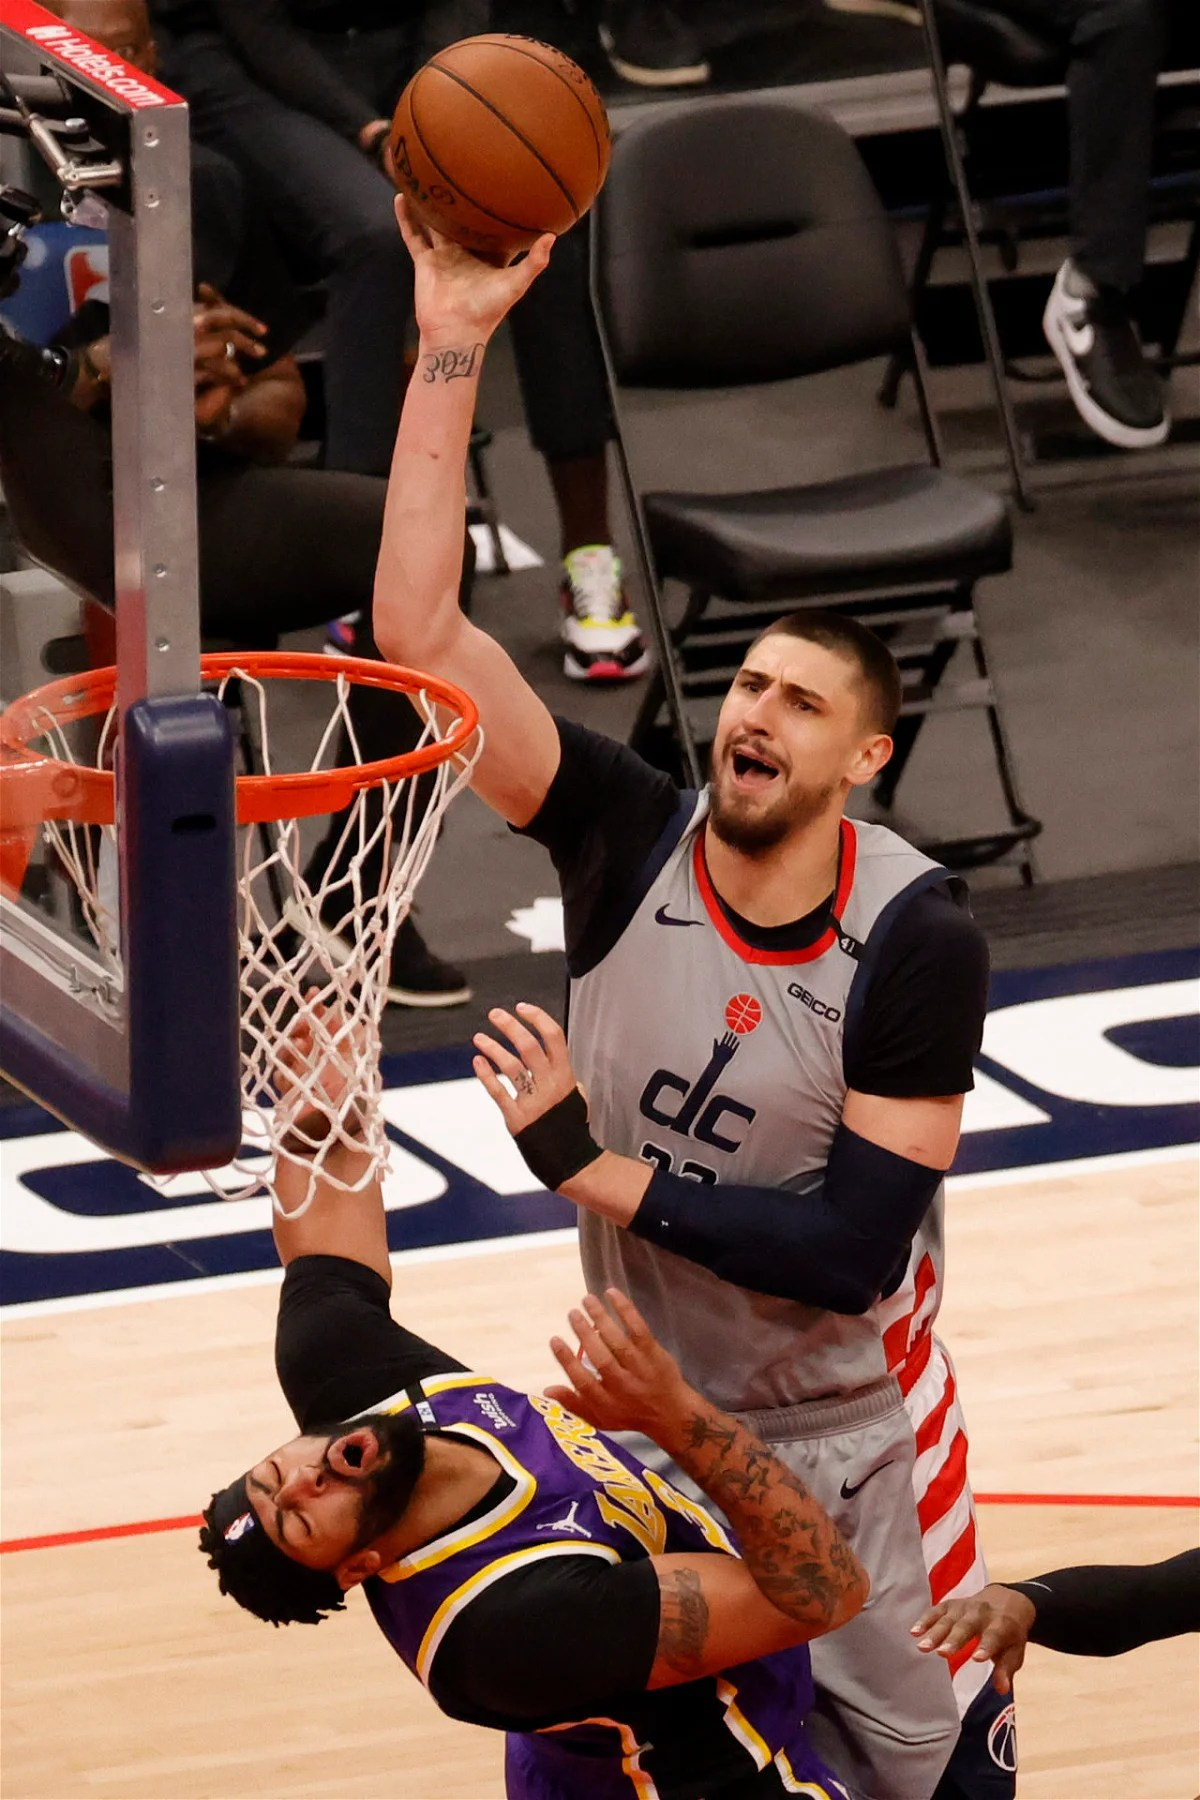 watch wizards forward punishes lakers